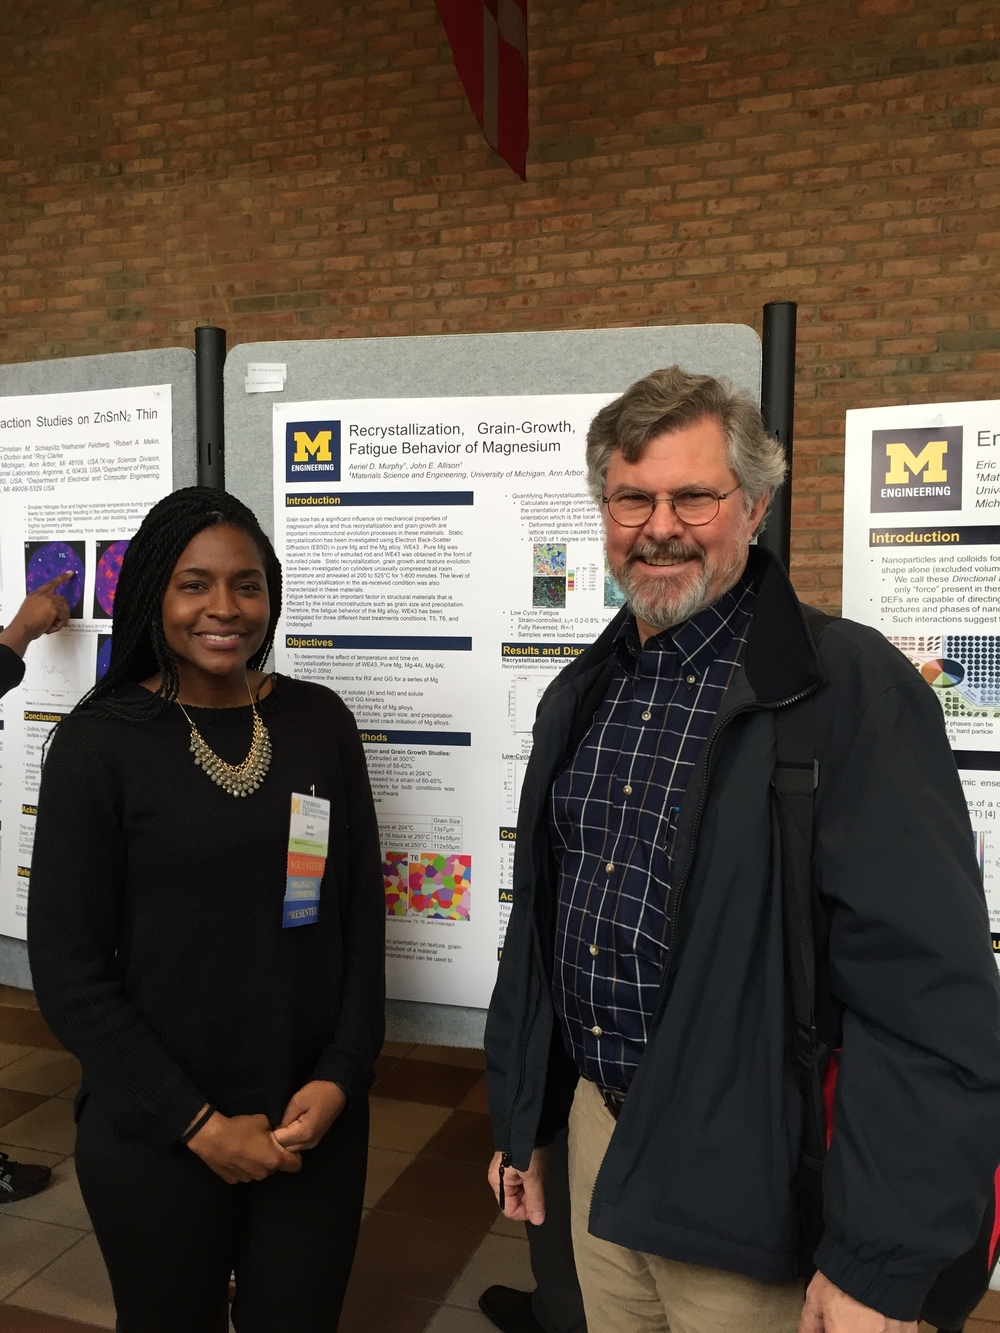 Engineering Graduate symposium